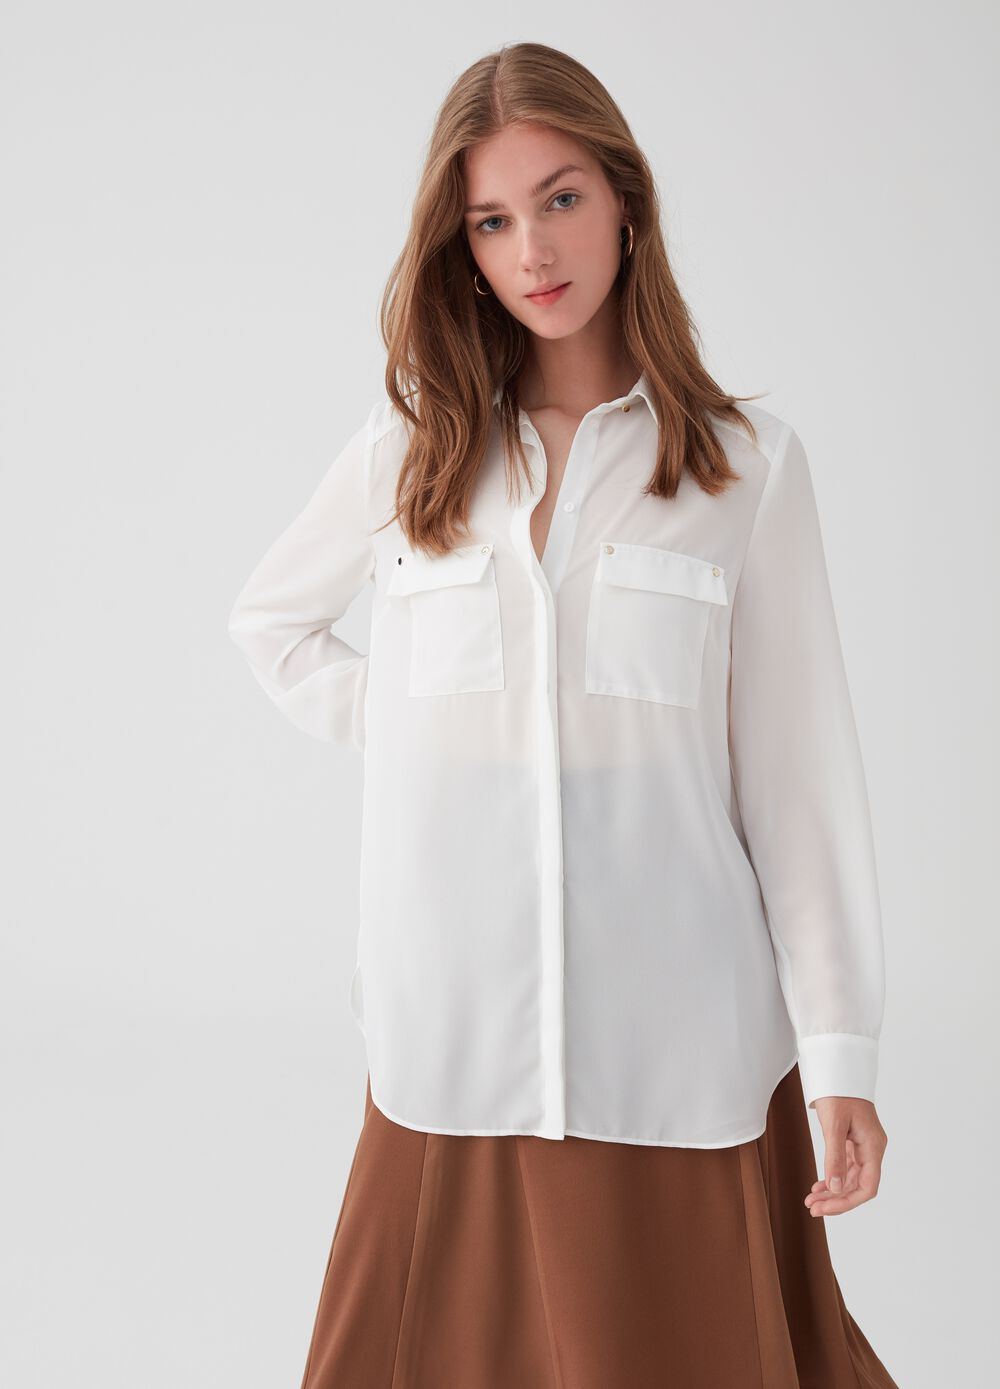 Long shirt with pockets and buttons